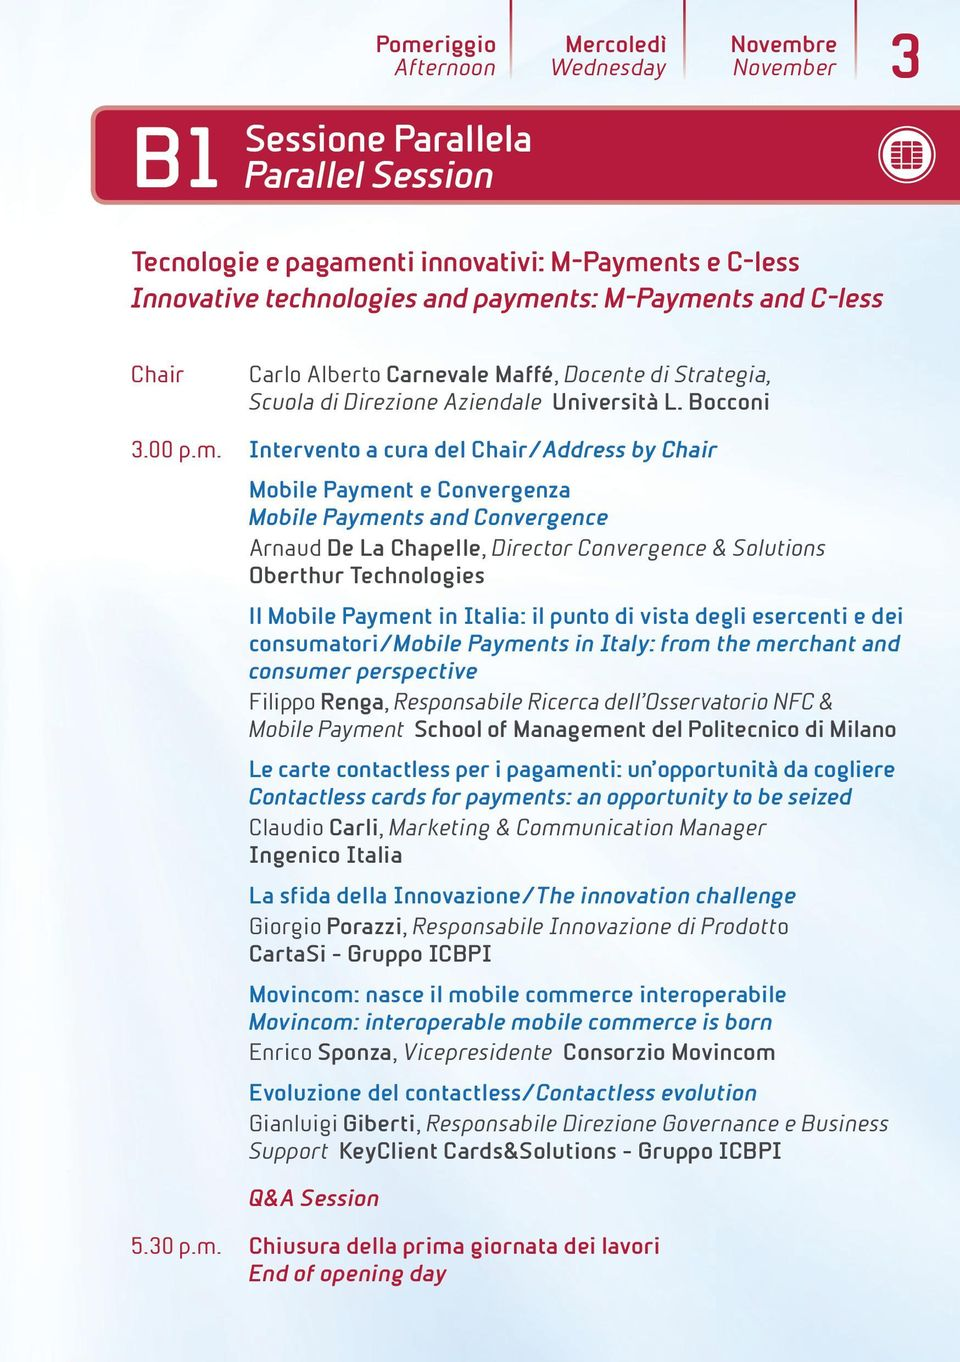 Bocconi Intervento a cura del /Address by Mobile Payment e Convergenza Mobile Payments and Convergence Arnaud De La Chapelle, Director Convergence & Solutions Oberthur Technologies ll Mobile Payment